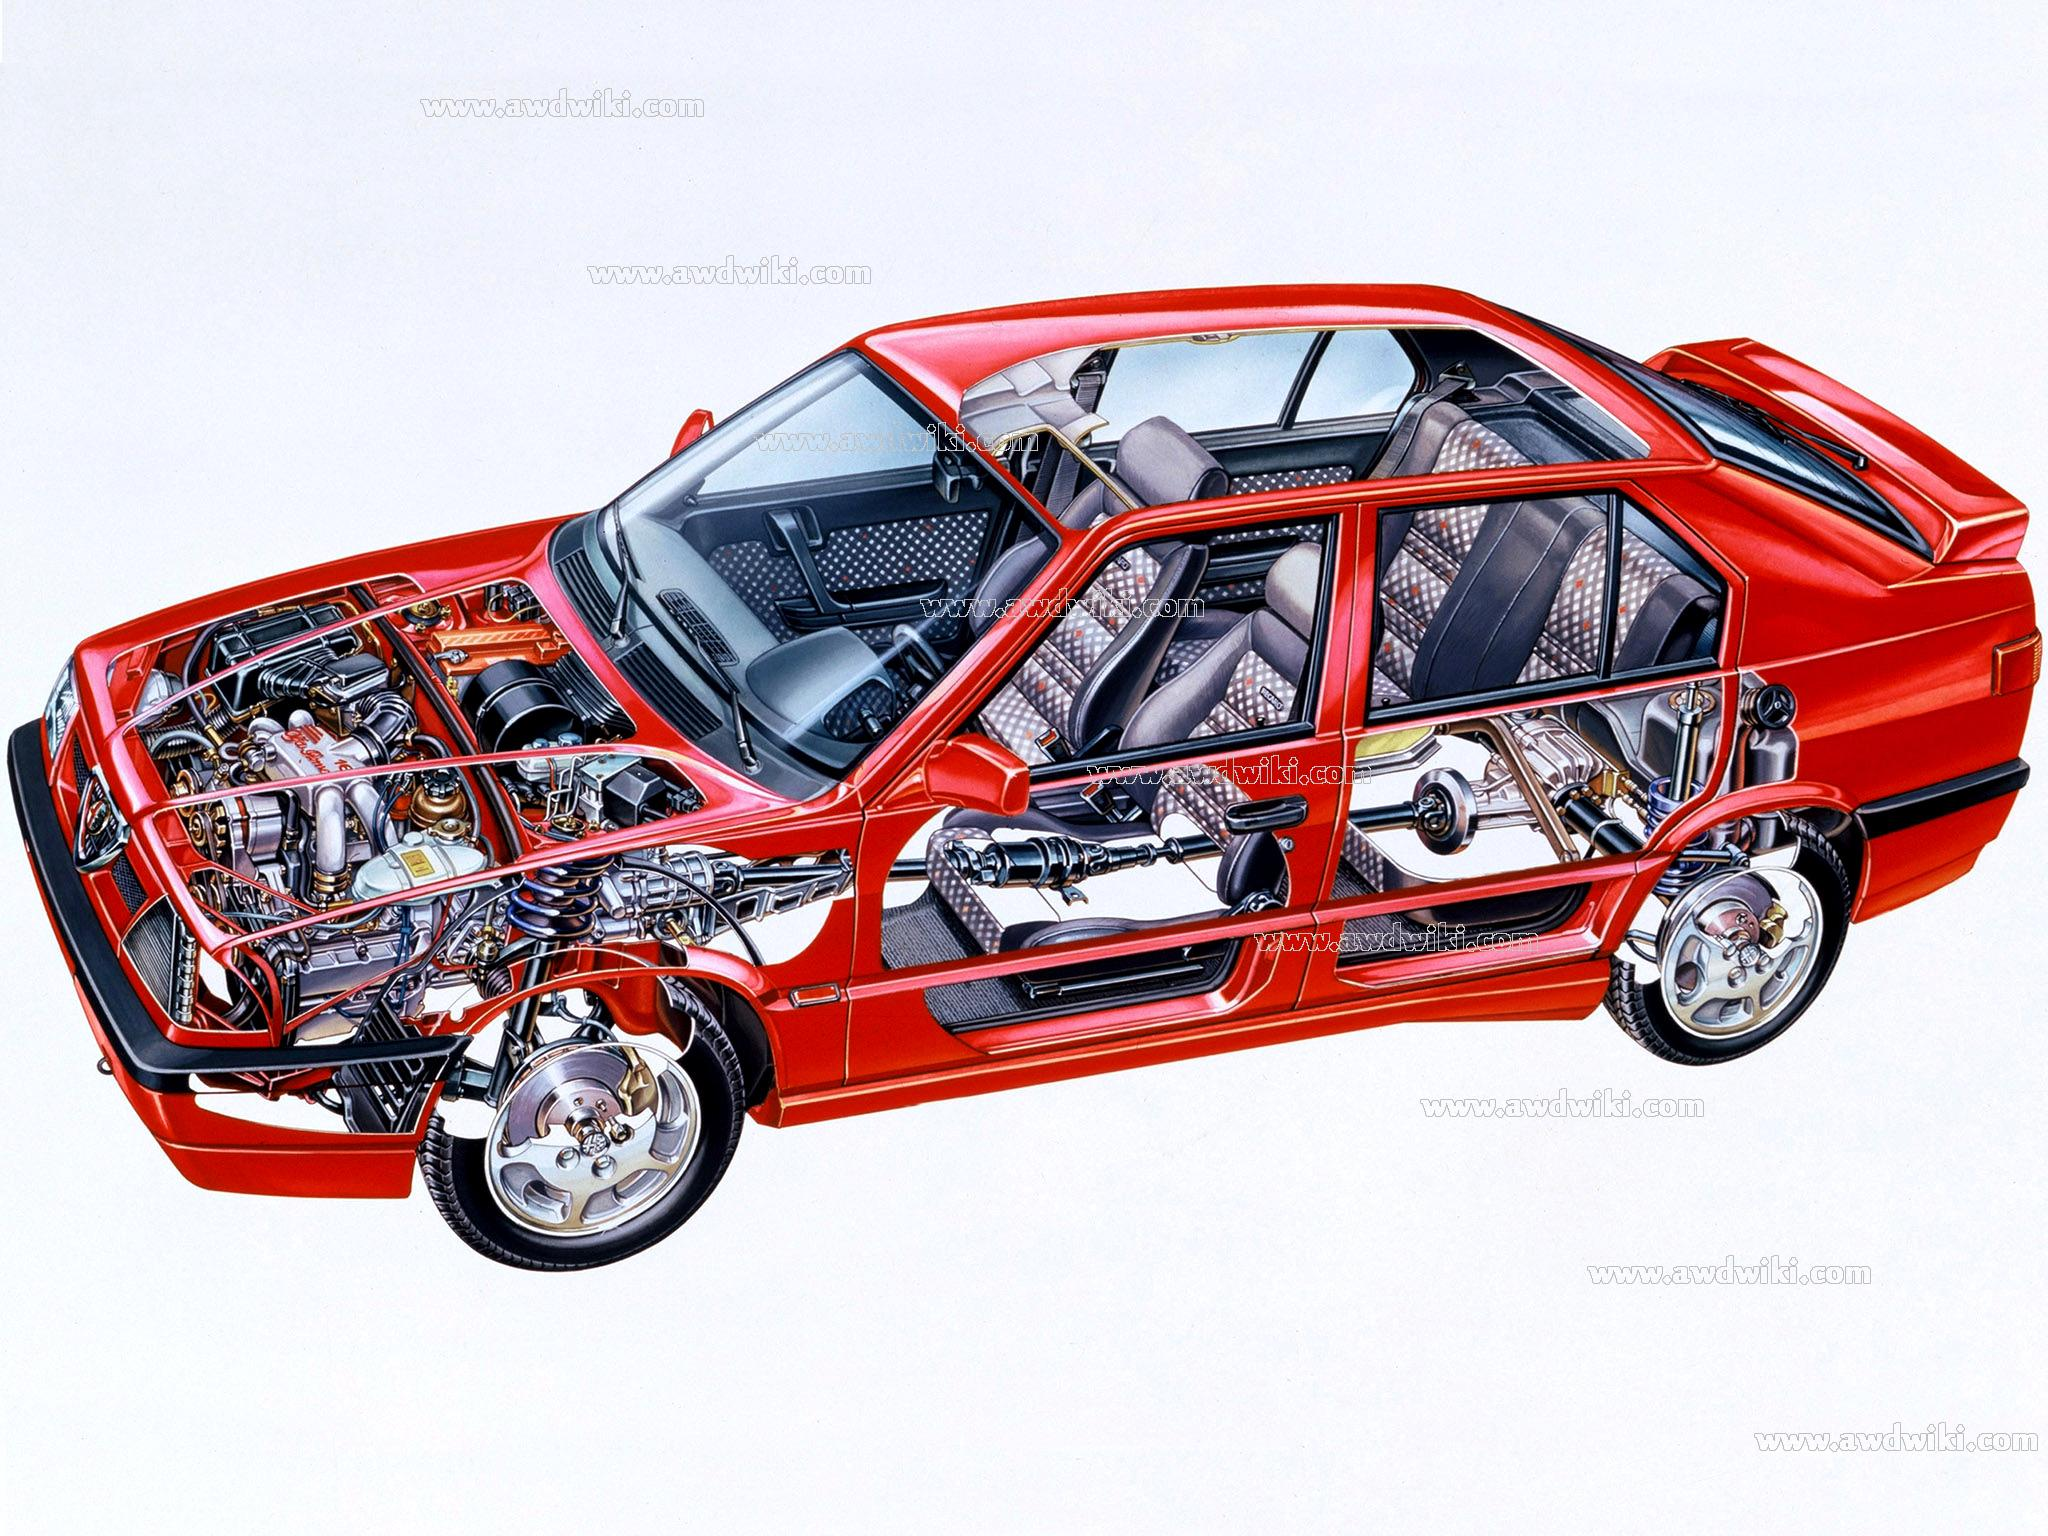 Alfa Romeo All Wheel Drive Explained Awd Cars 4x4 Vehicles 4wd Spider Engine Diagram 33 Transmission